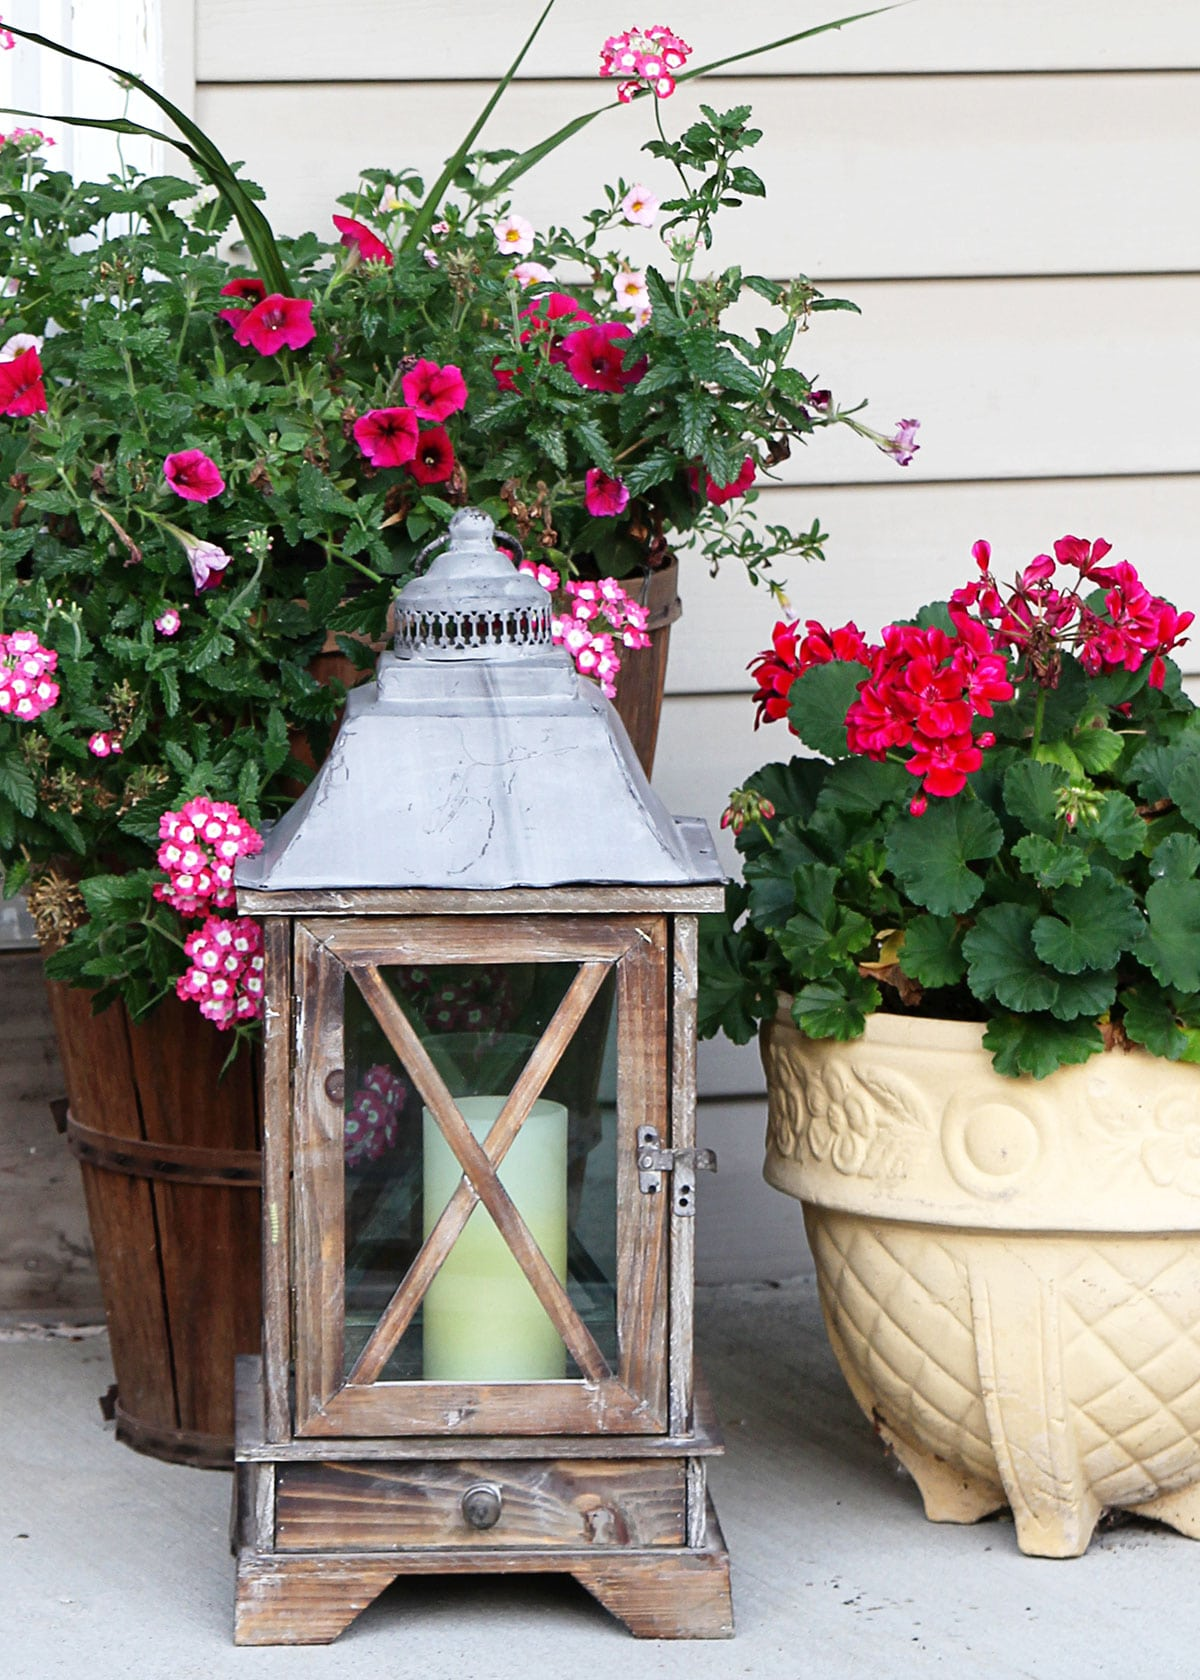 Wooden lantern featured on a small porch with a pink potted flowers.